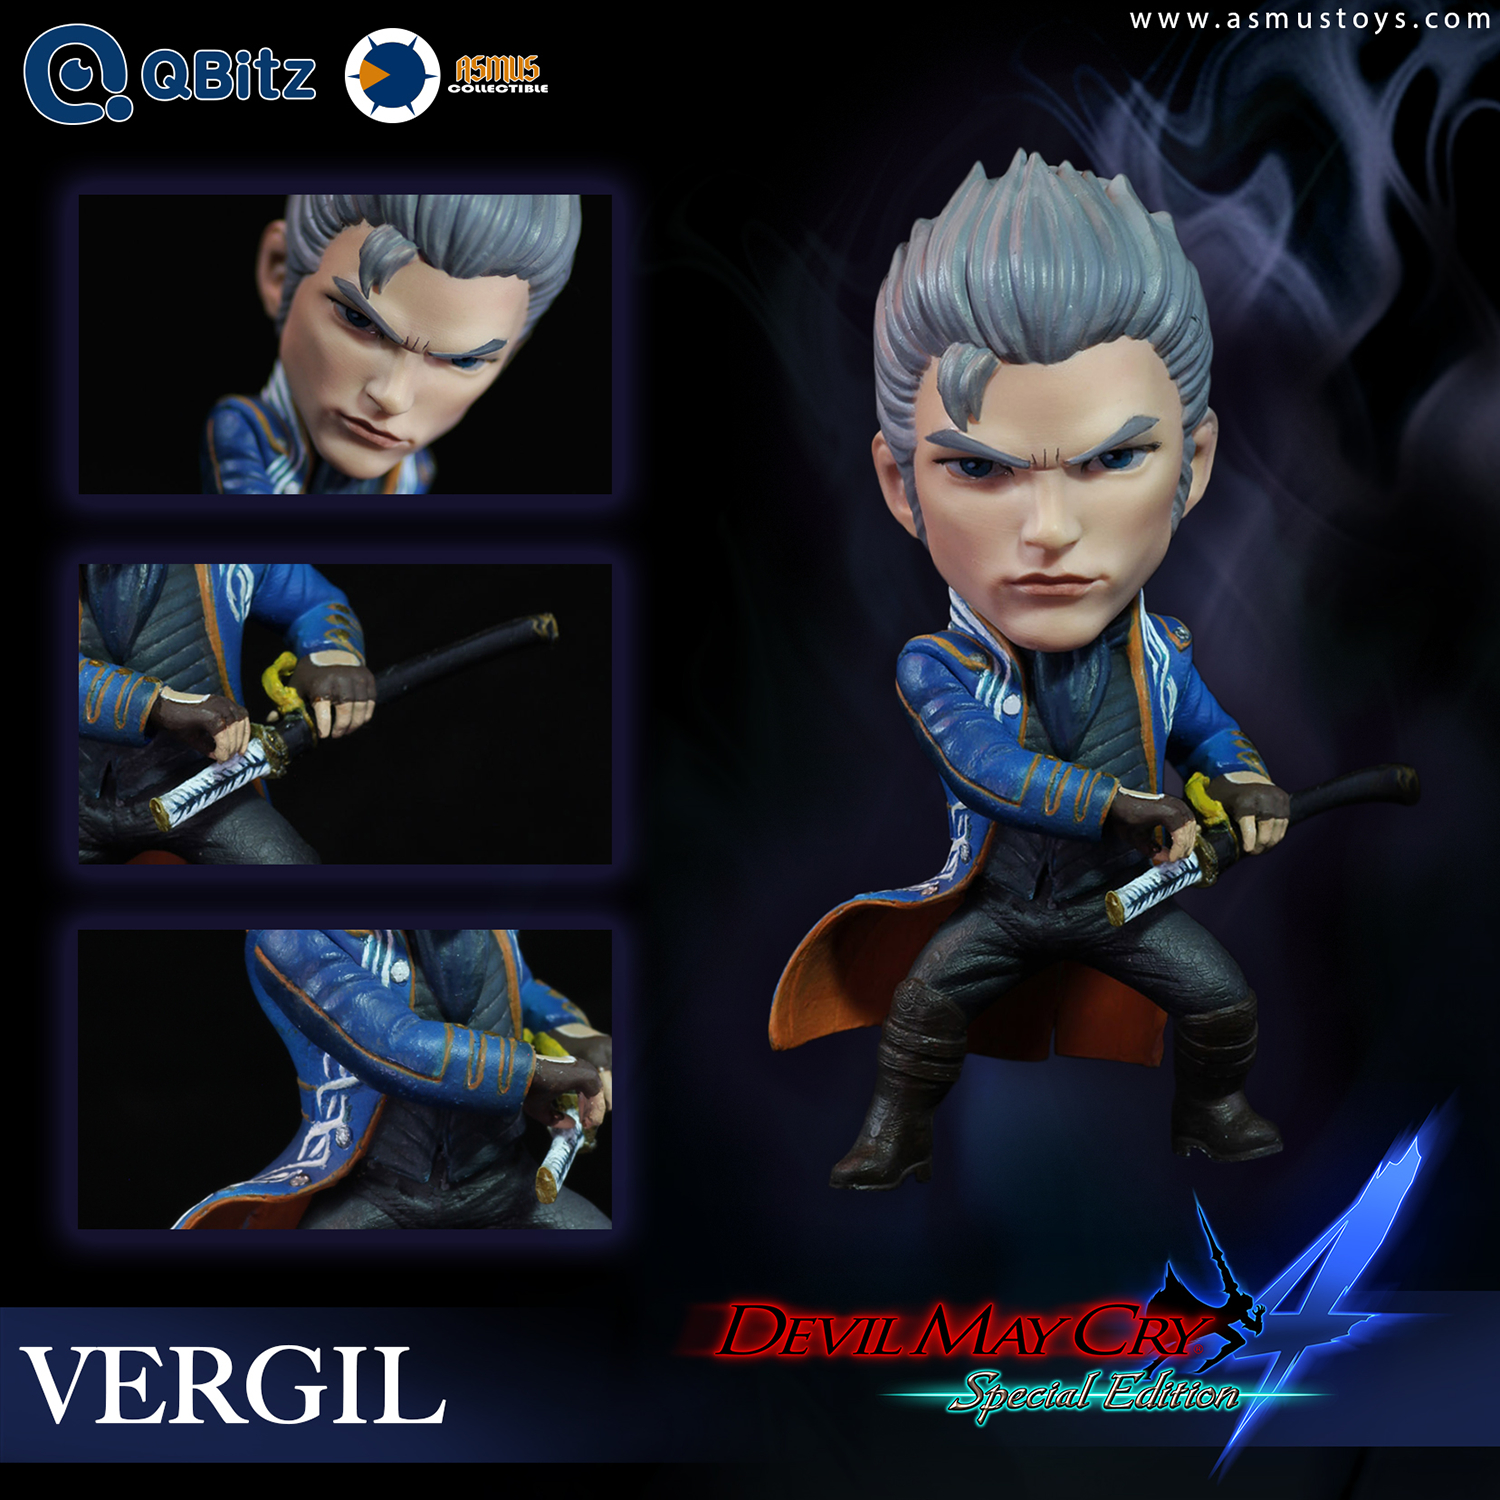 DEVIL MAY CRY 4 QBITZ VERGIL LIMITED ARTICULATION FIG